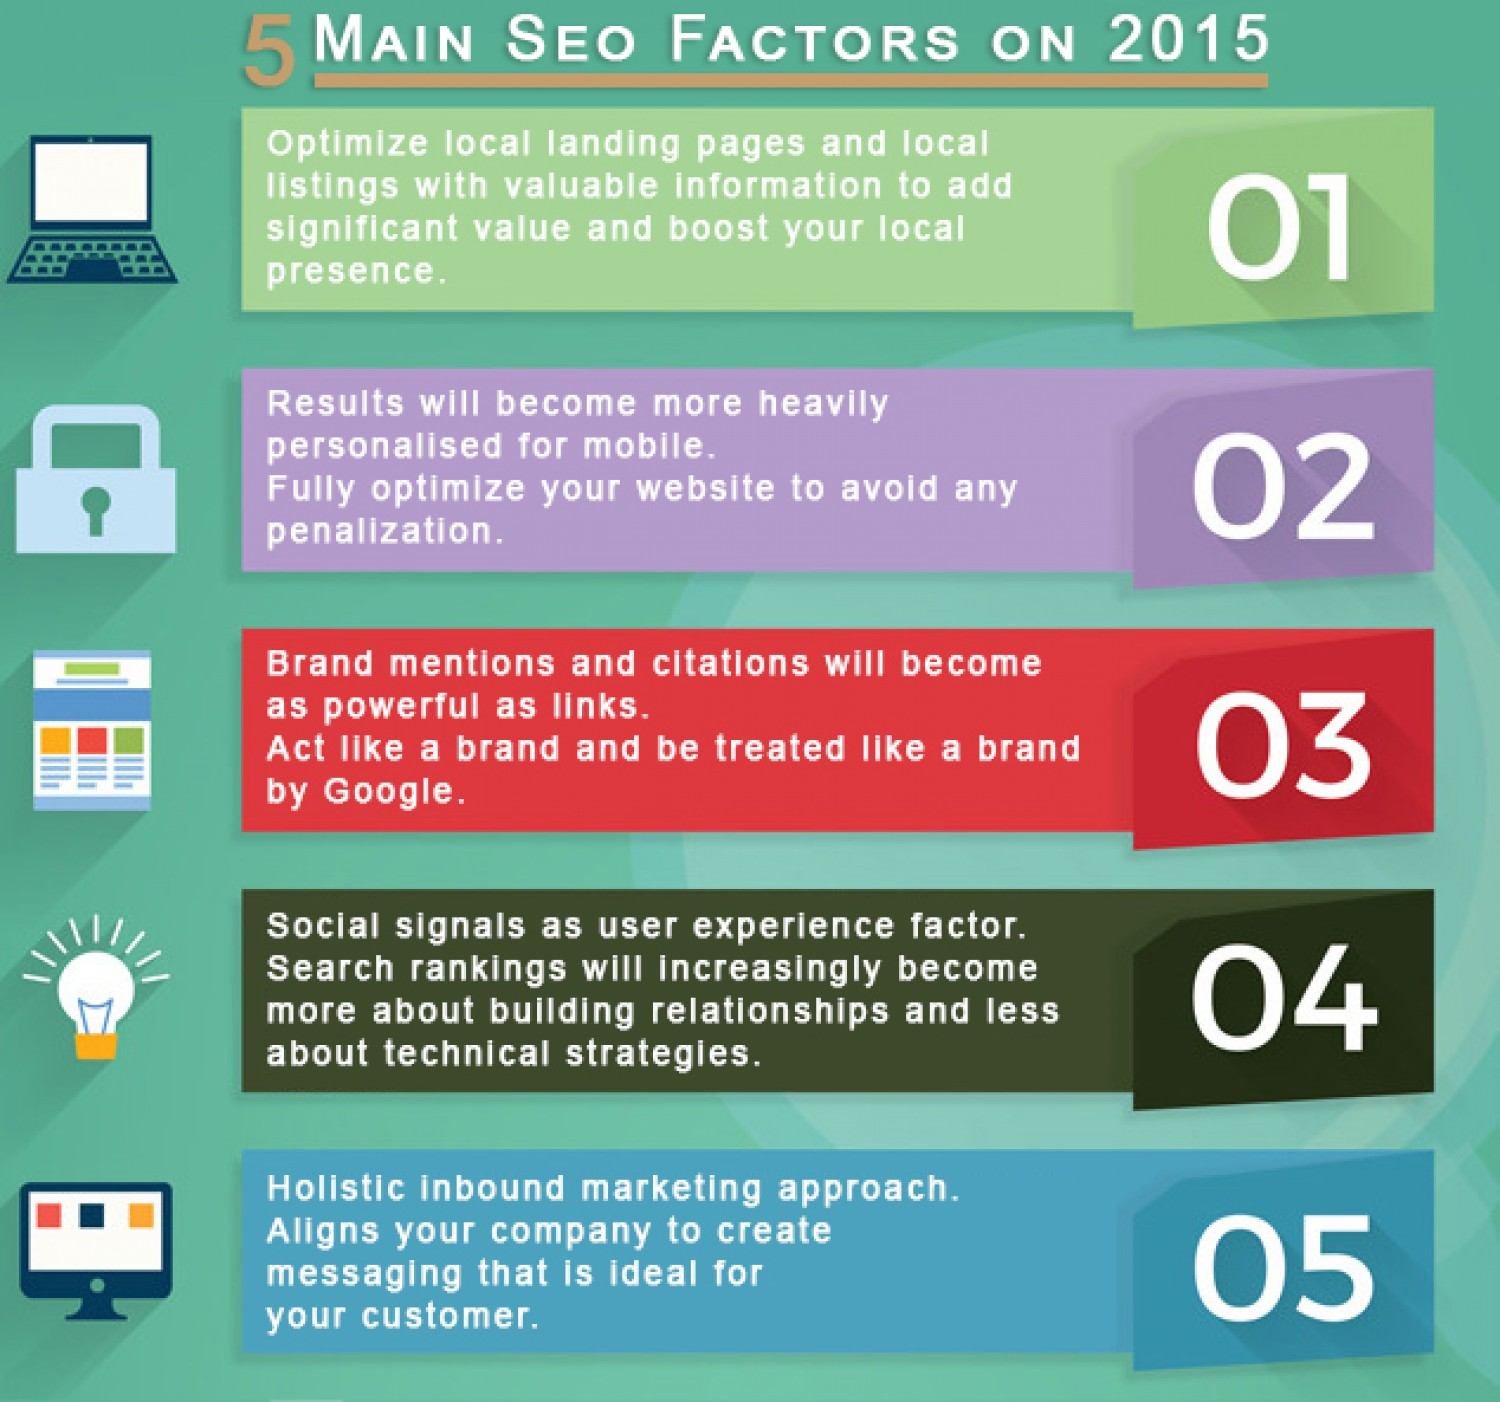 Five SEO Factors to follow in 2015